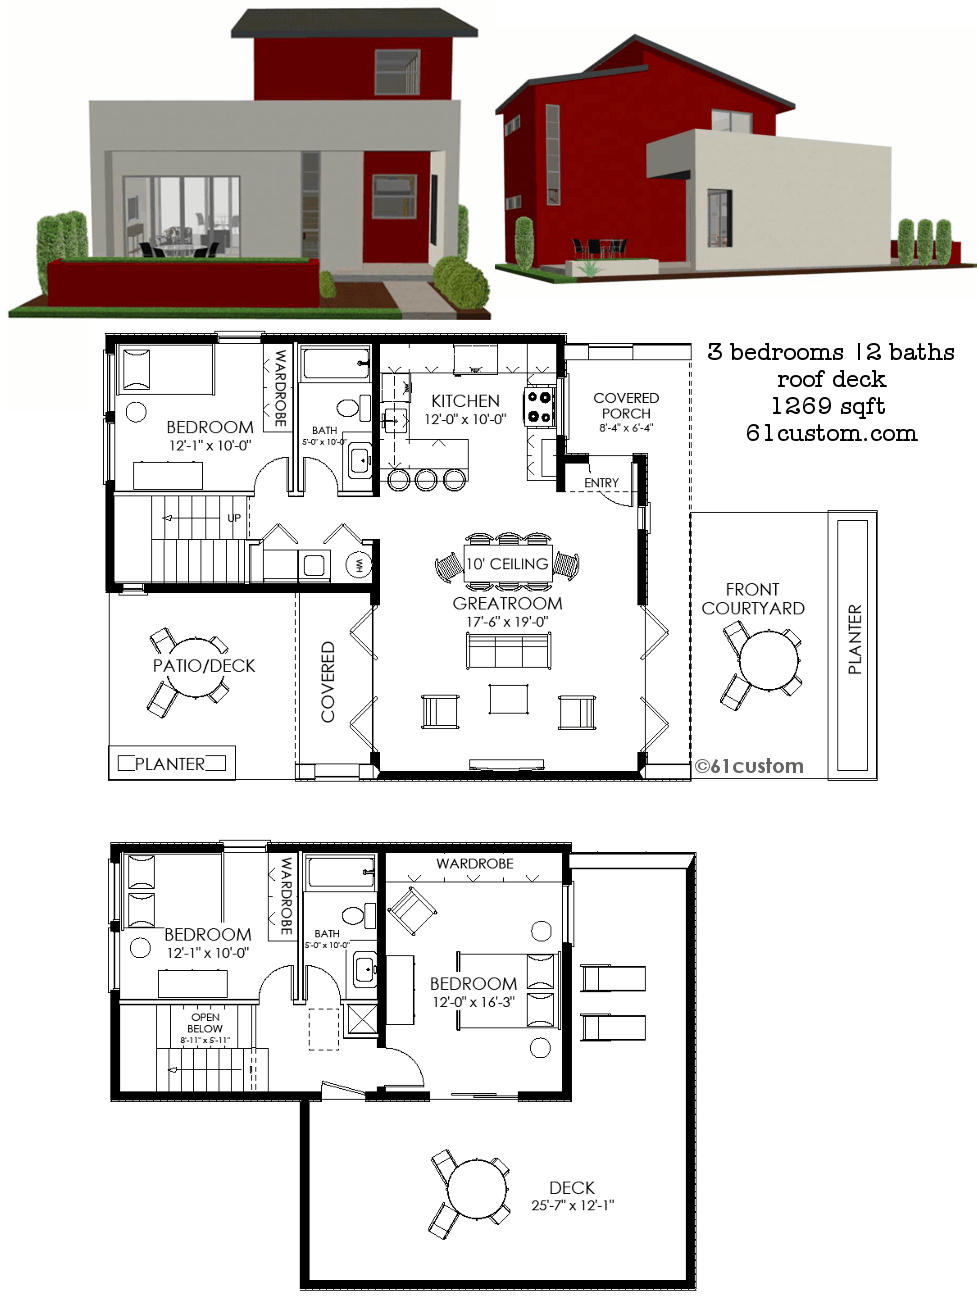 Contemporary Small House Plan Front courtyard House